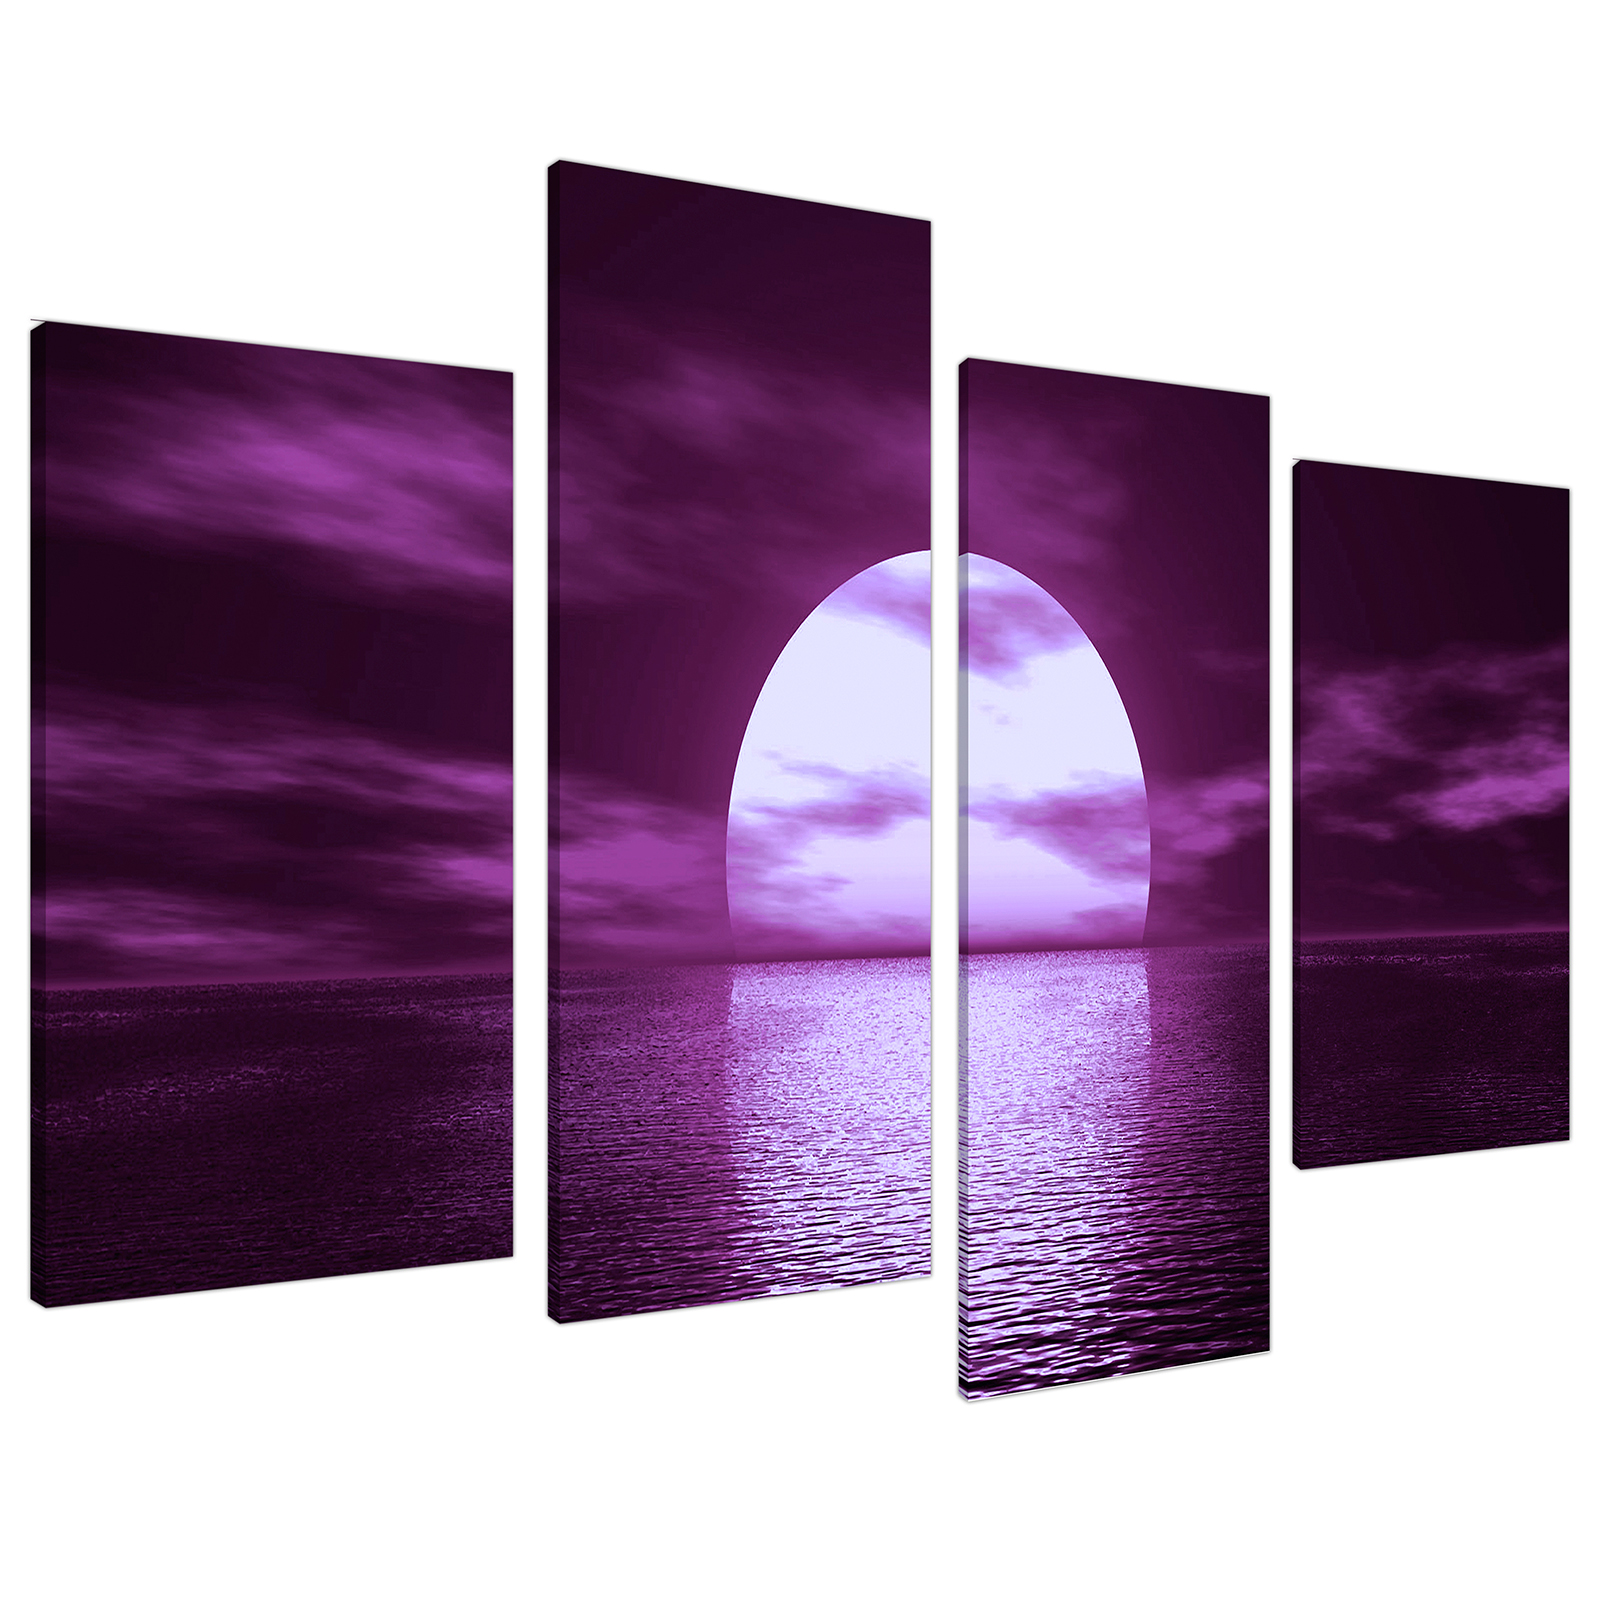 An image of Purple Sunset Ocean Sky Landscape Canvas - Multi 4 Piece - 130cm - 4002